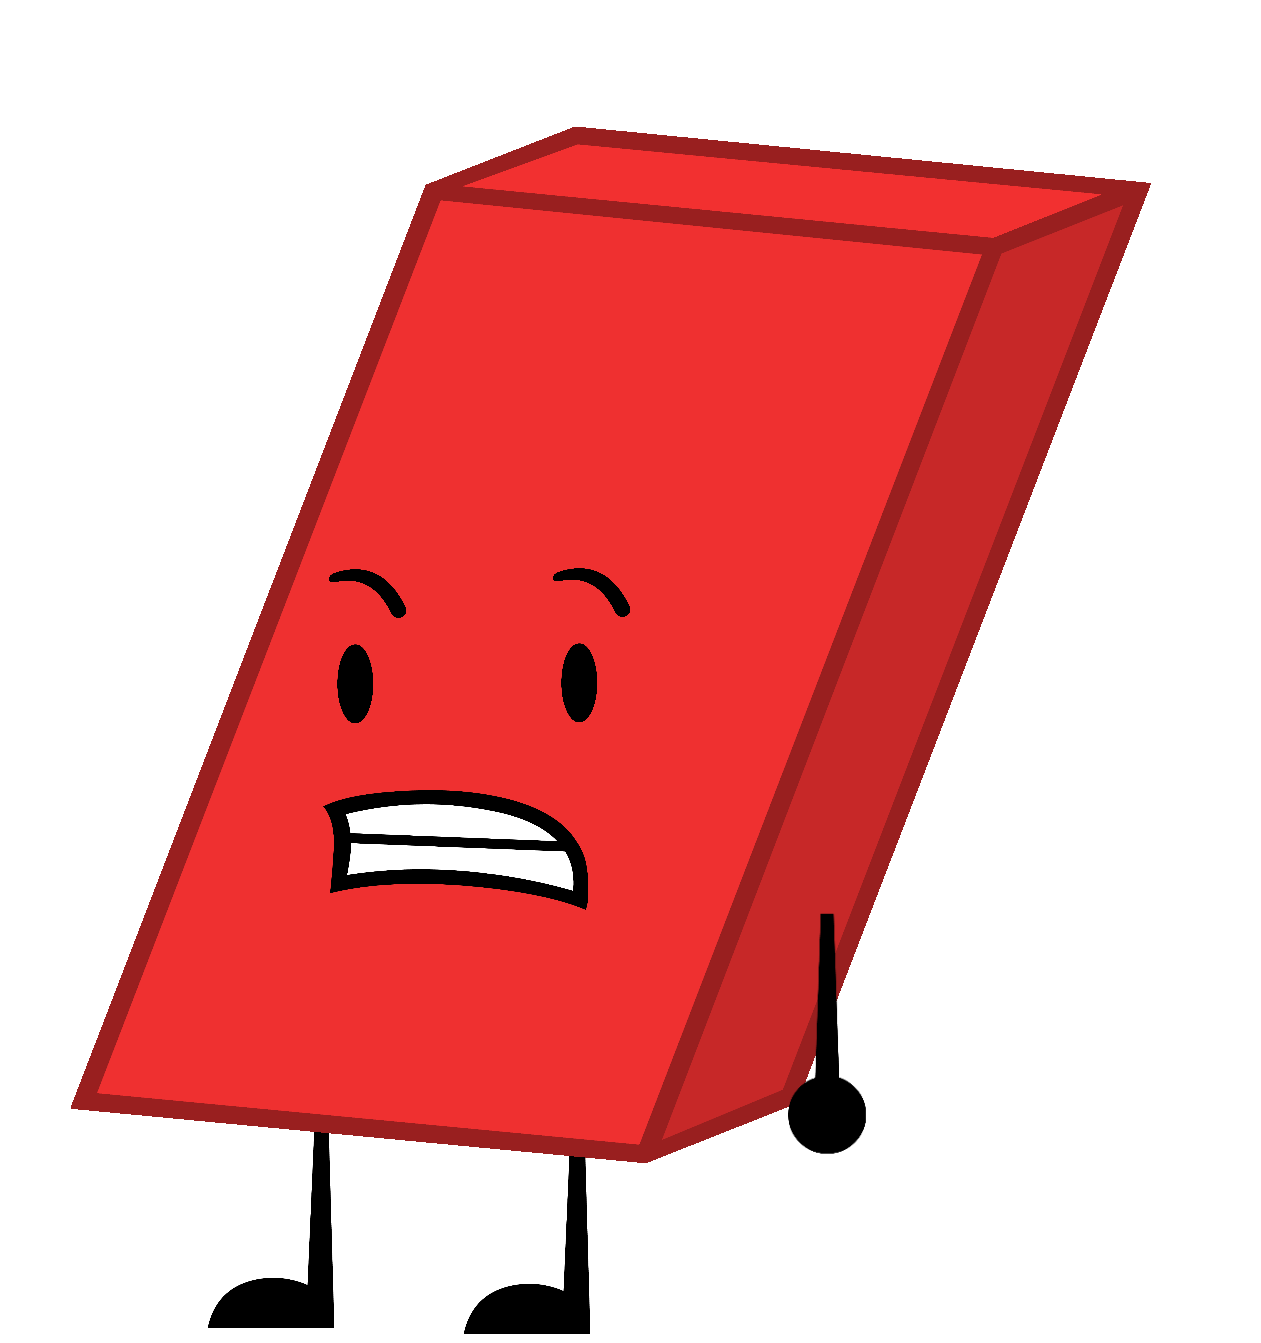 Eraser clipart yellow. Image as blocky png